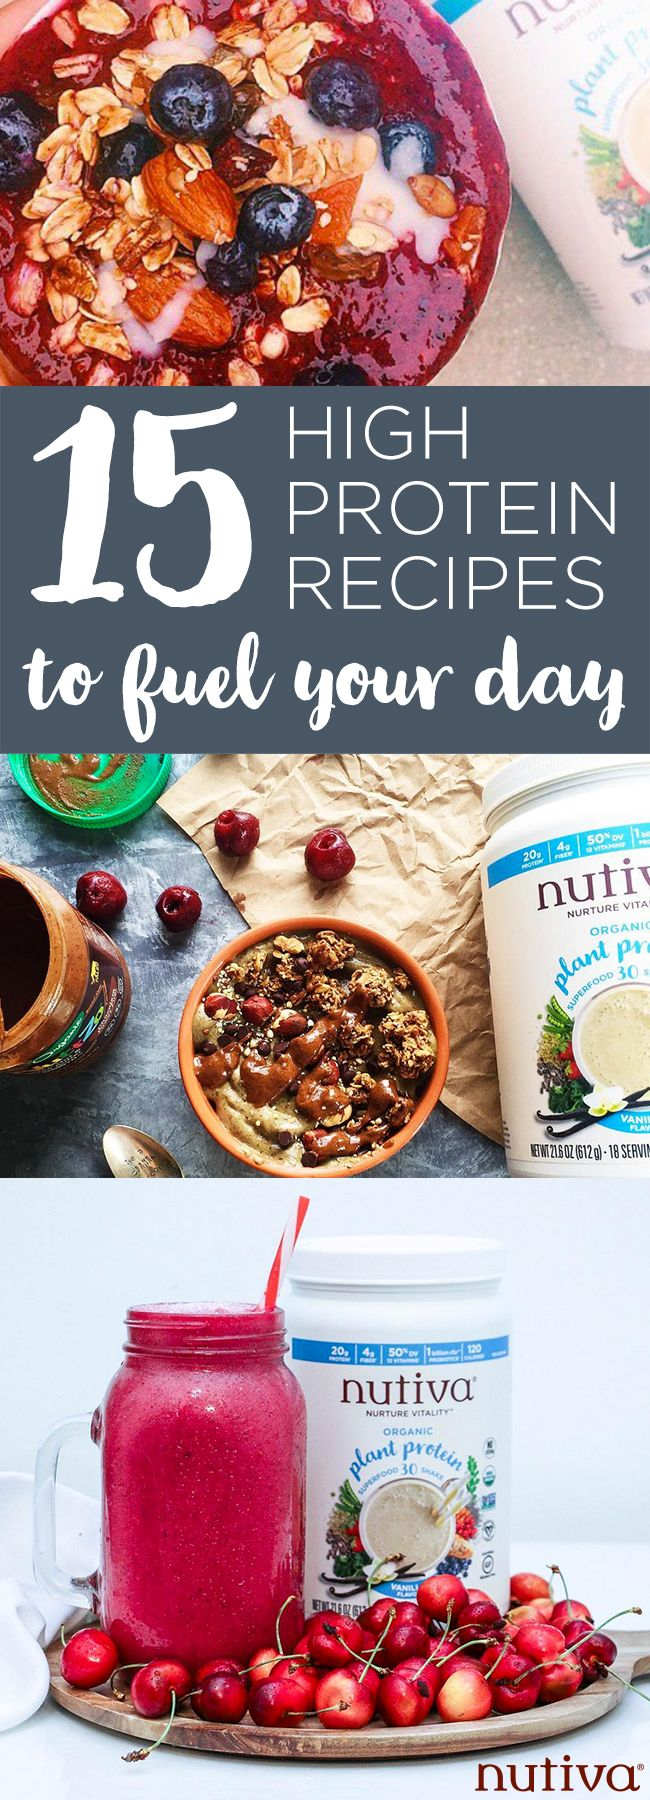 1000 Images About Healthy Lifestyle On Pinterest